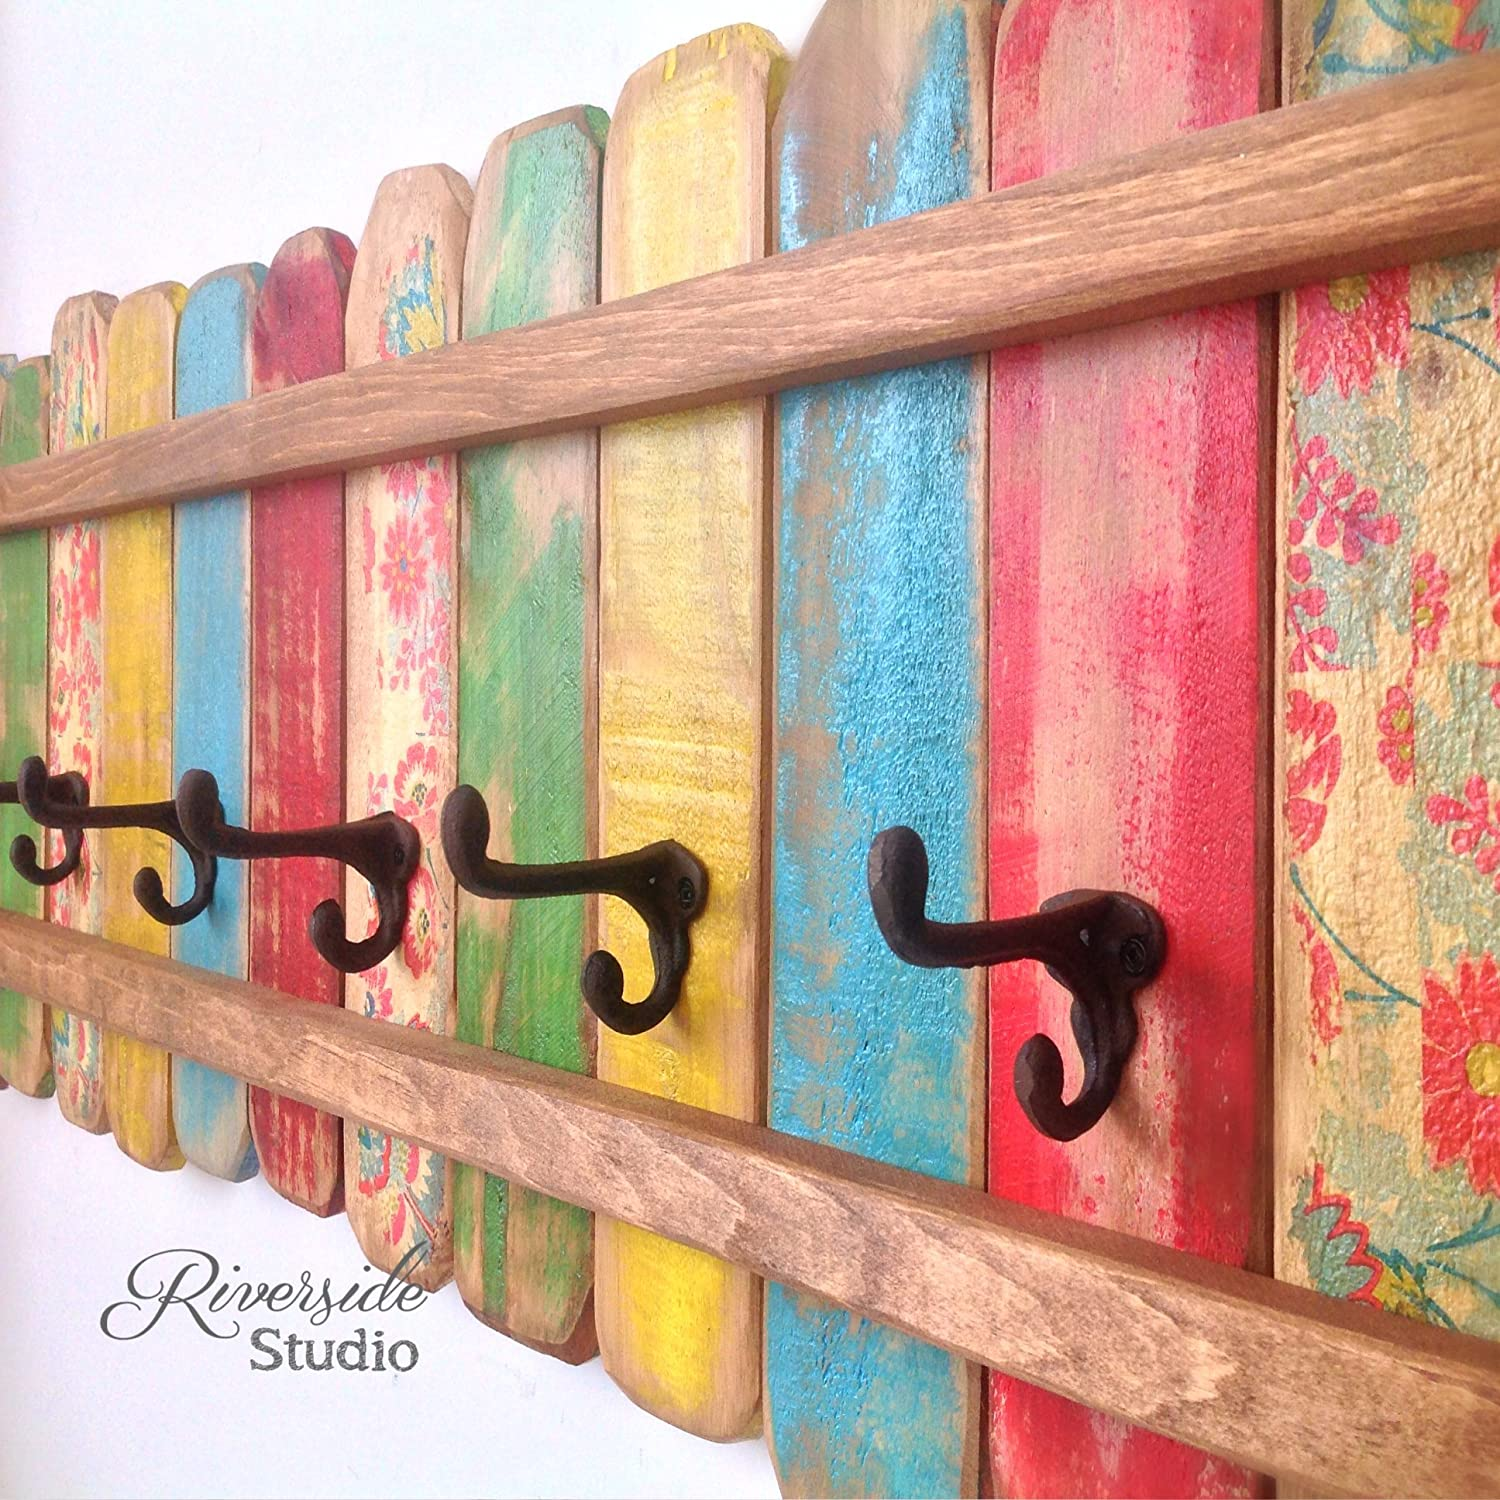 Wood Coat Rack Cast Iron Coat Hooks / Shabby Cottage Beach Chic Coat Rack, Bohemian Furniture, Bathroom Towel Bar, Reclaimed Wood